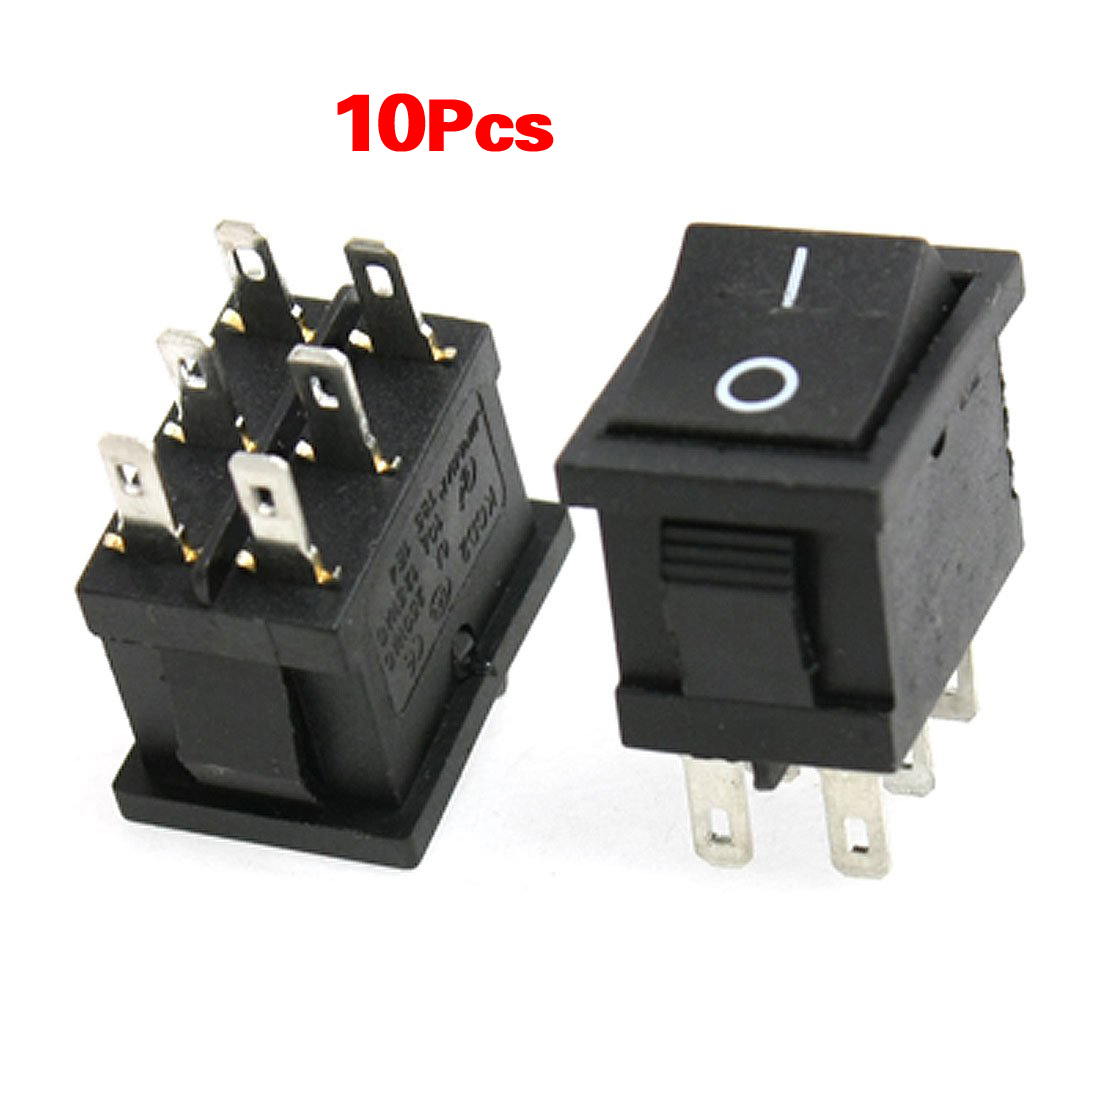 Promotion! 10pcs AC 6A/250V 10A/125V 6 Pin DPDT ON/ON 2 Position Snap In Boat Rocker Switch 5 pcs ac 6a 250v 10a 125v 3 pin black button on on round boat rocker switch